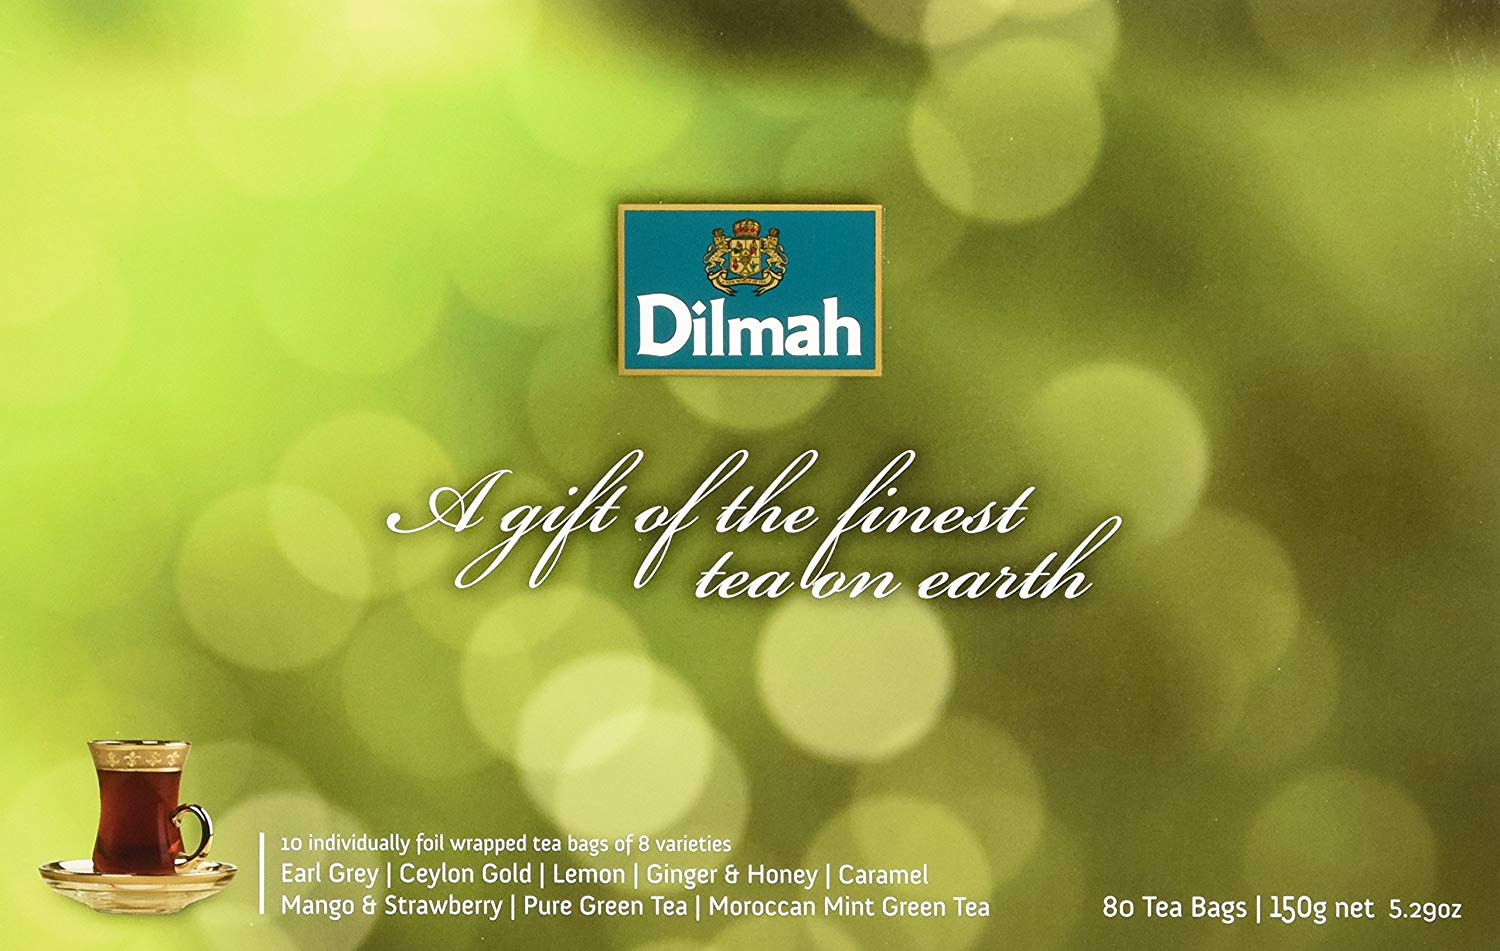 Dilmah, Gift of Tea, Illuminations Green Pack, 80 Ct, 8 Varieties of Individually Foil Wrapped Tea Bags in a Gift Box, (Pack of 1)